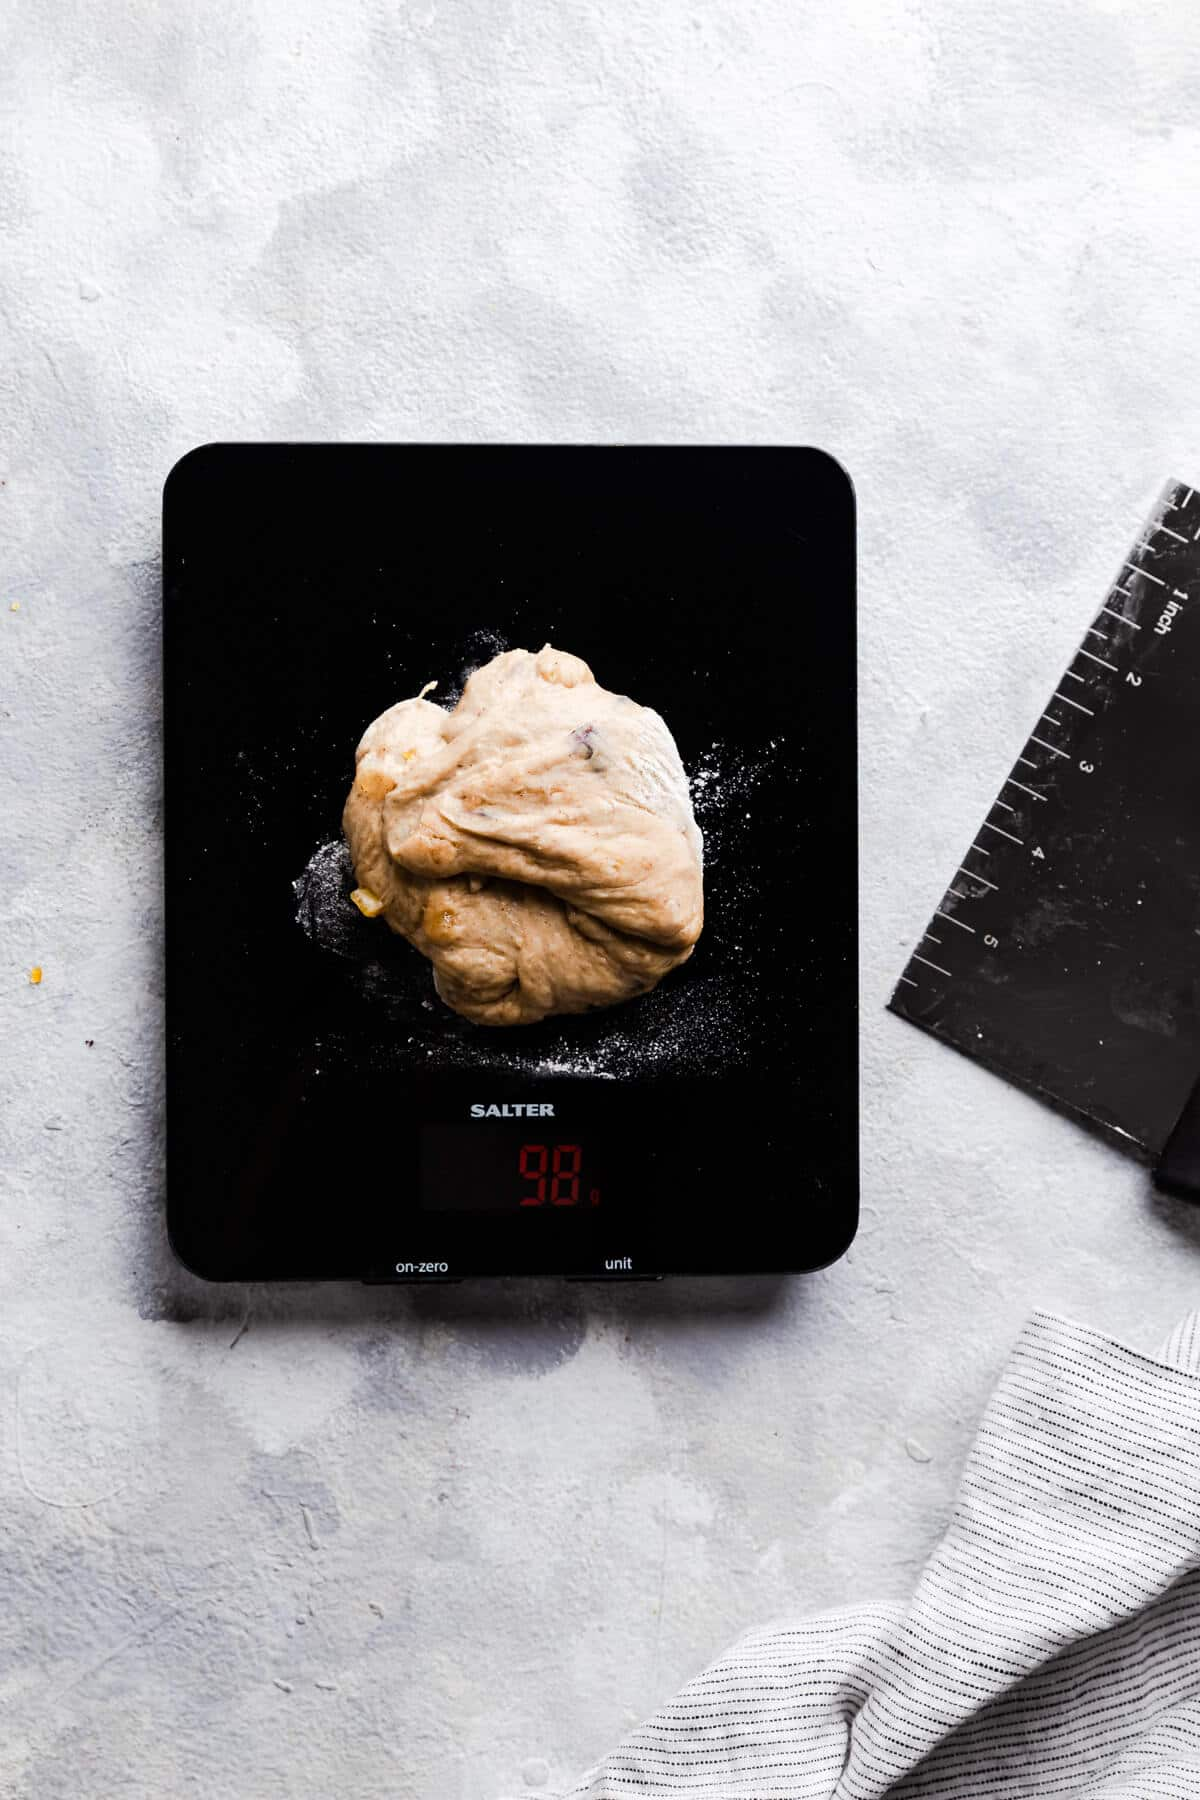 top view of digital kitchen scales with piece of dough on top